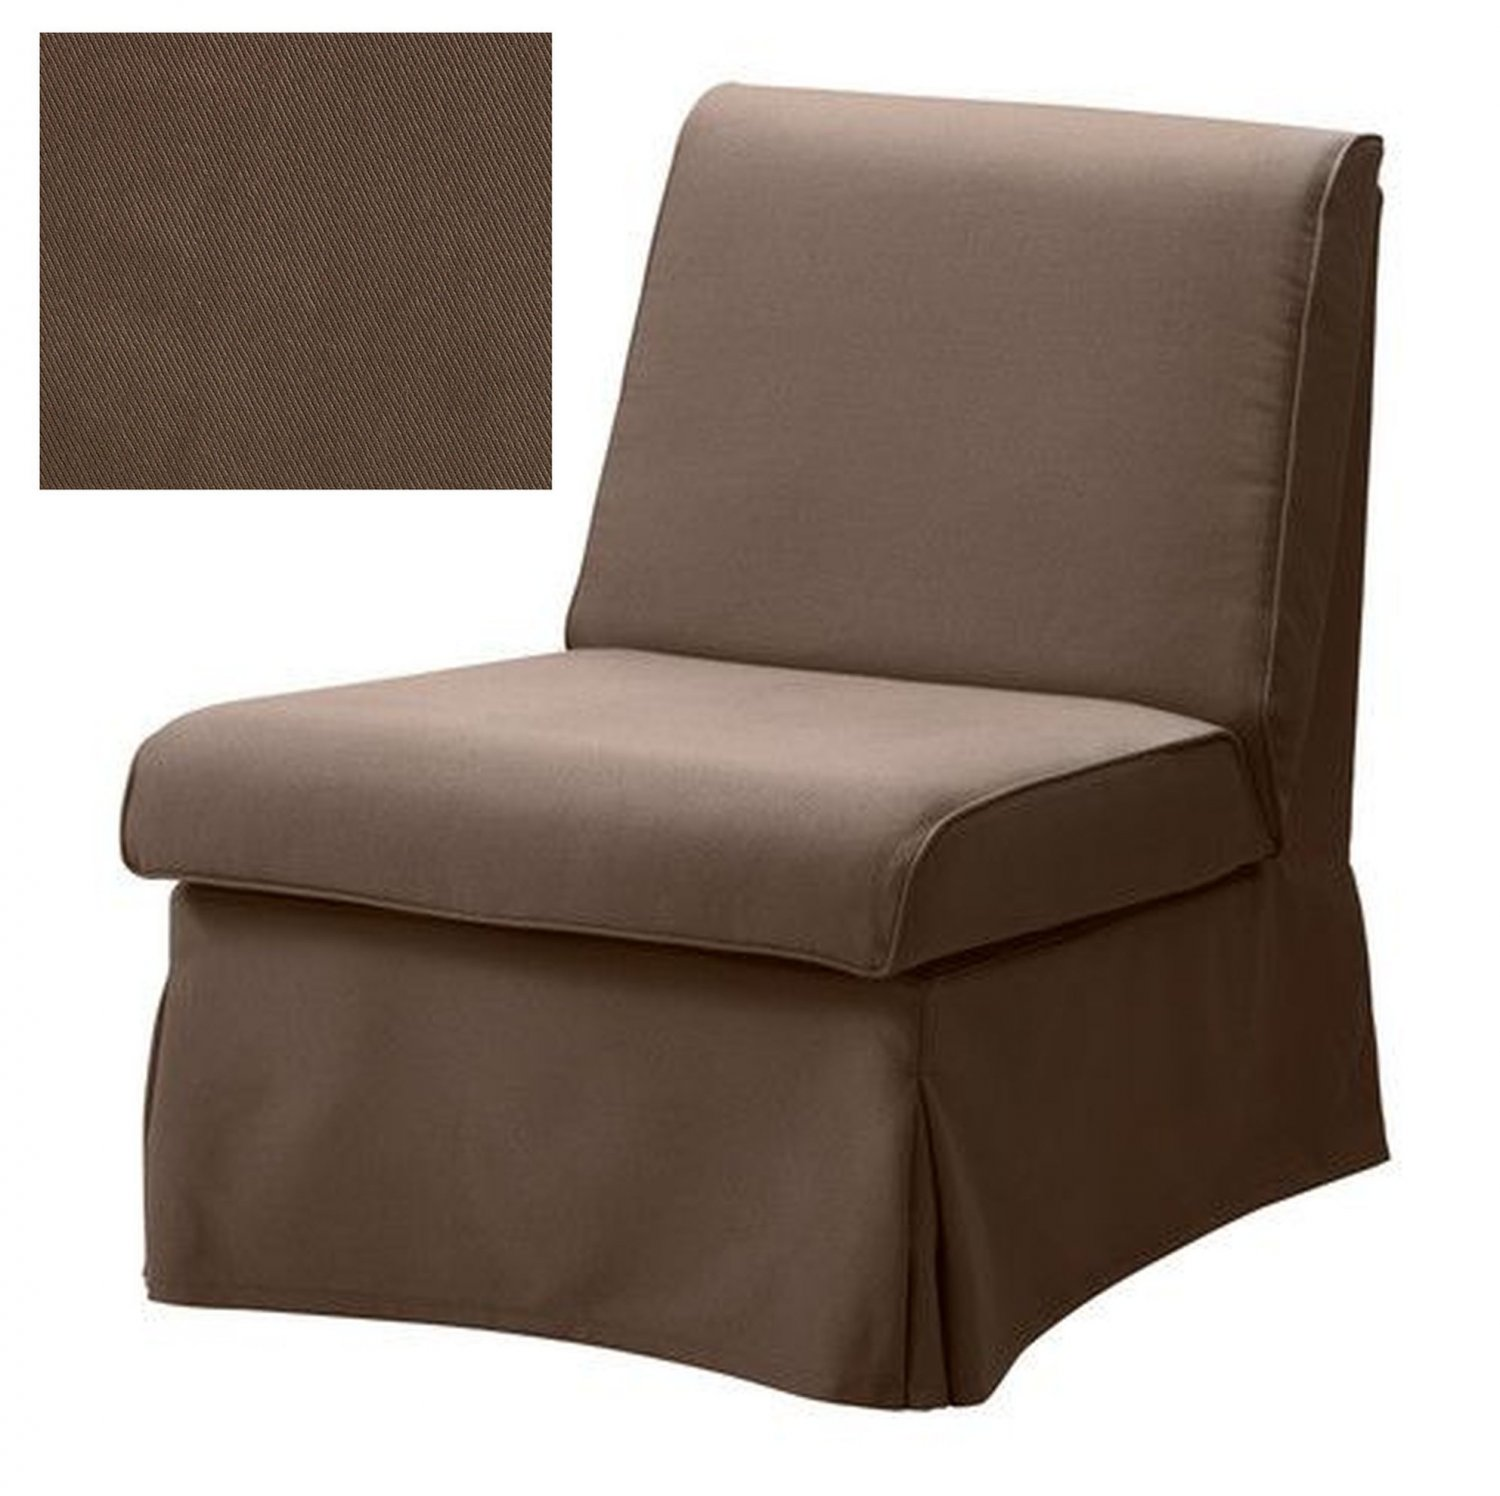 chair covers ikea uk best massage for neck and shoulders sandby 1 seat sofa section slipcover cover